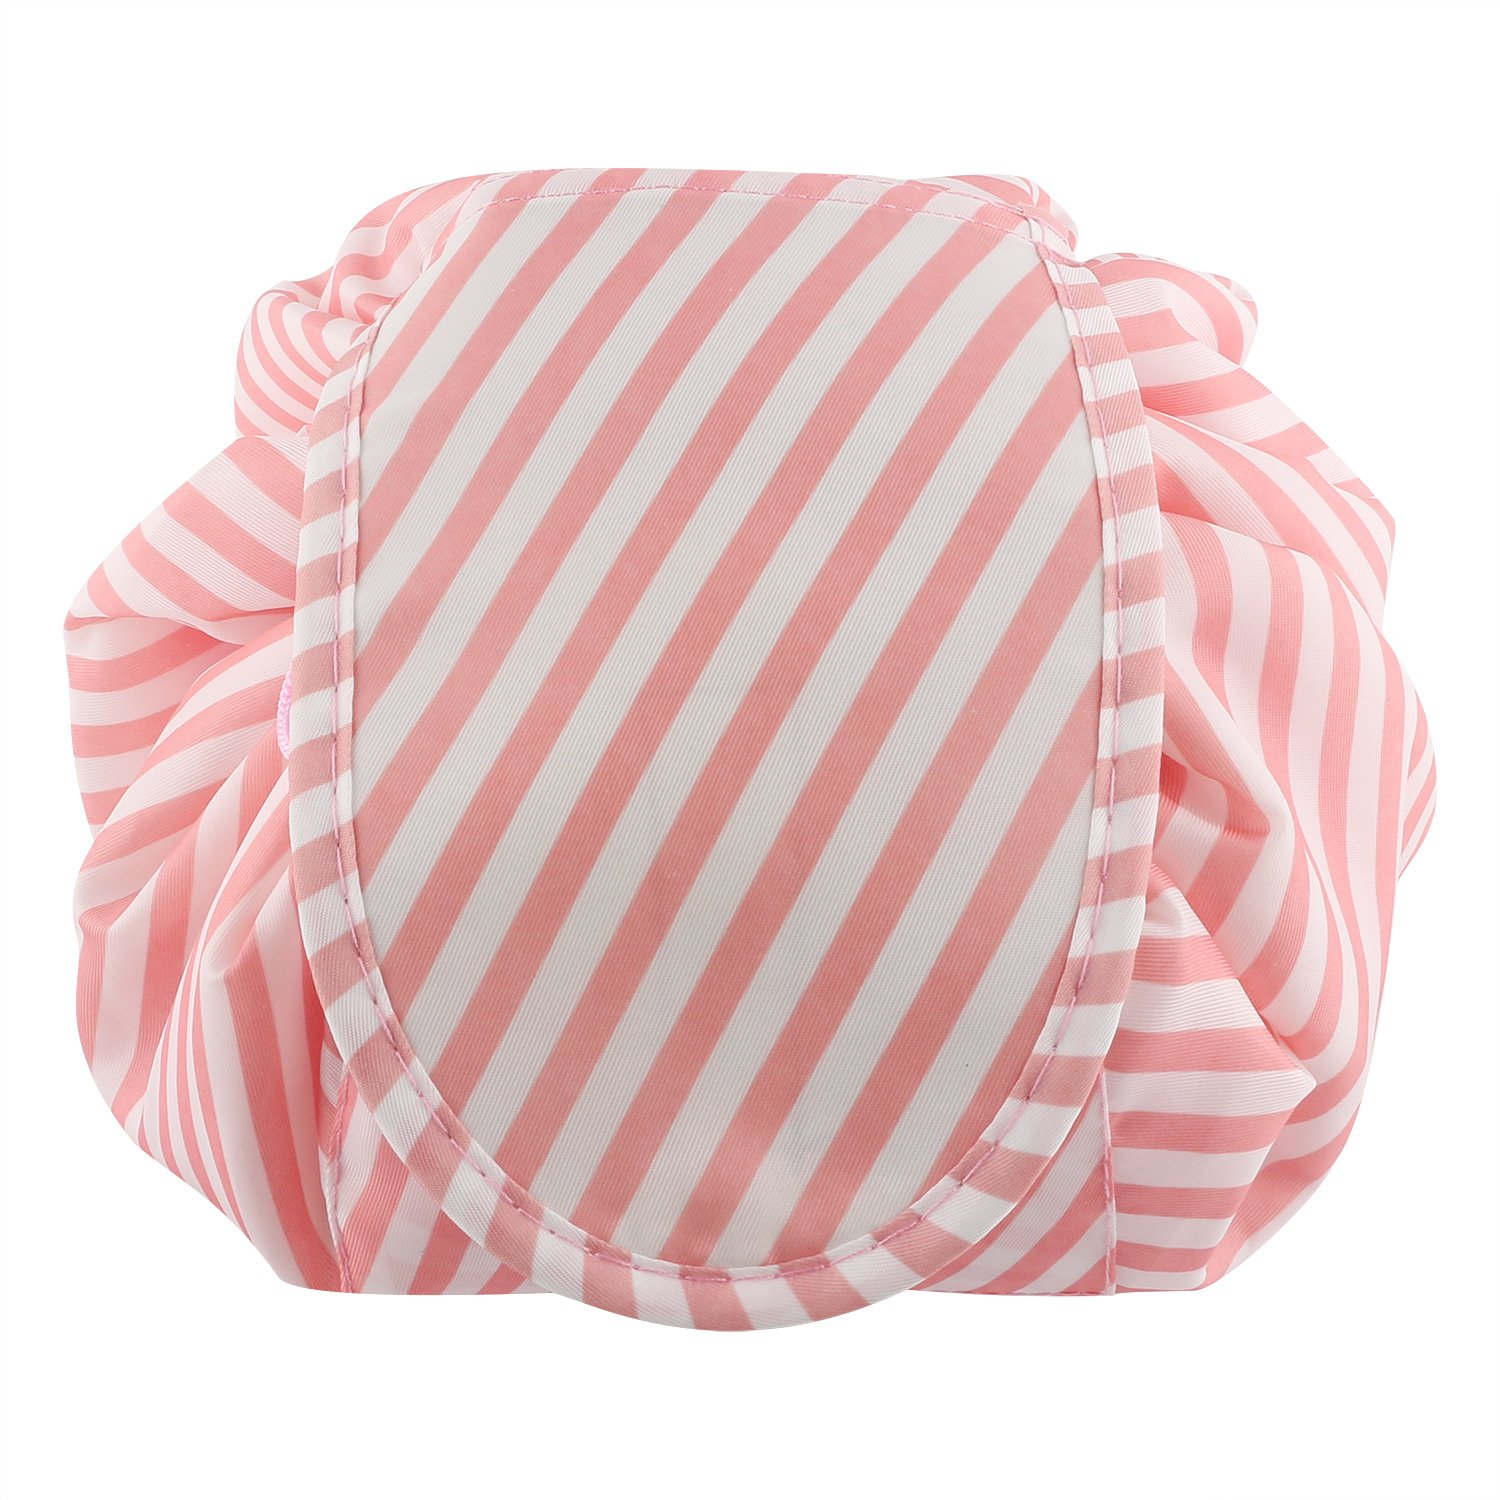 Lazy Portable Makeup Bag Large Capacity Waterproof Travel Cosmetic Bag Quick Easy Pack Round Travel Toiletry Bag Perfect for Storage Pretty Fashion Pattern Drawstring Bag (Pink stripe) by Edapter (Image #1)